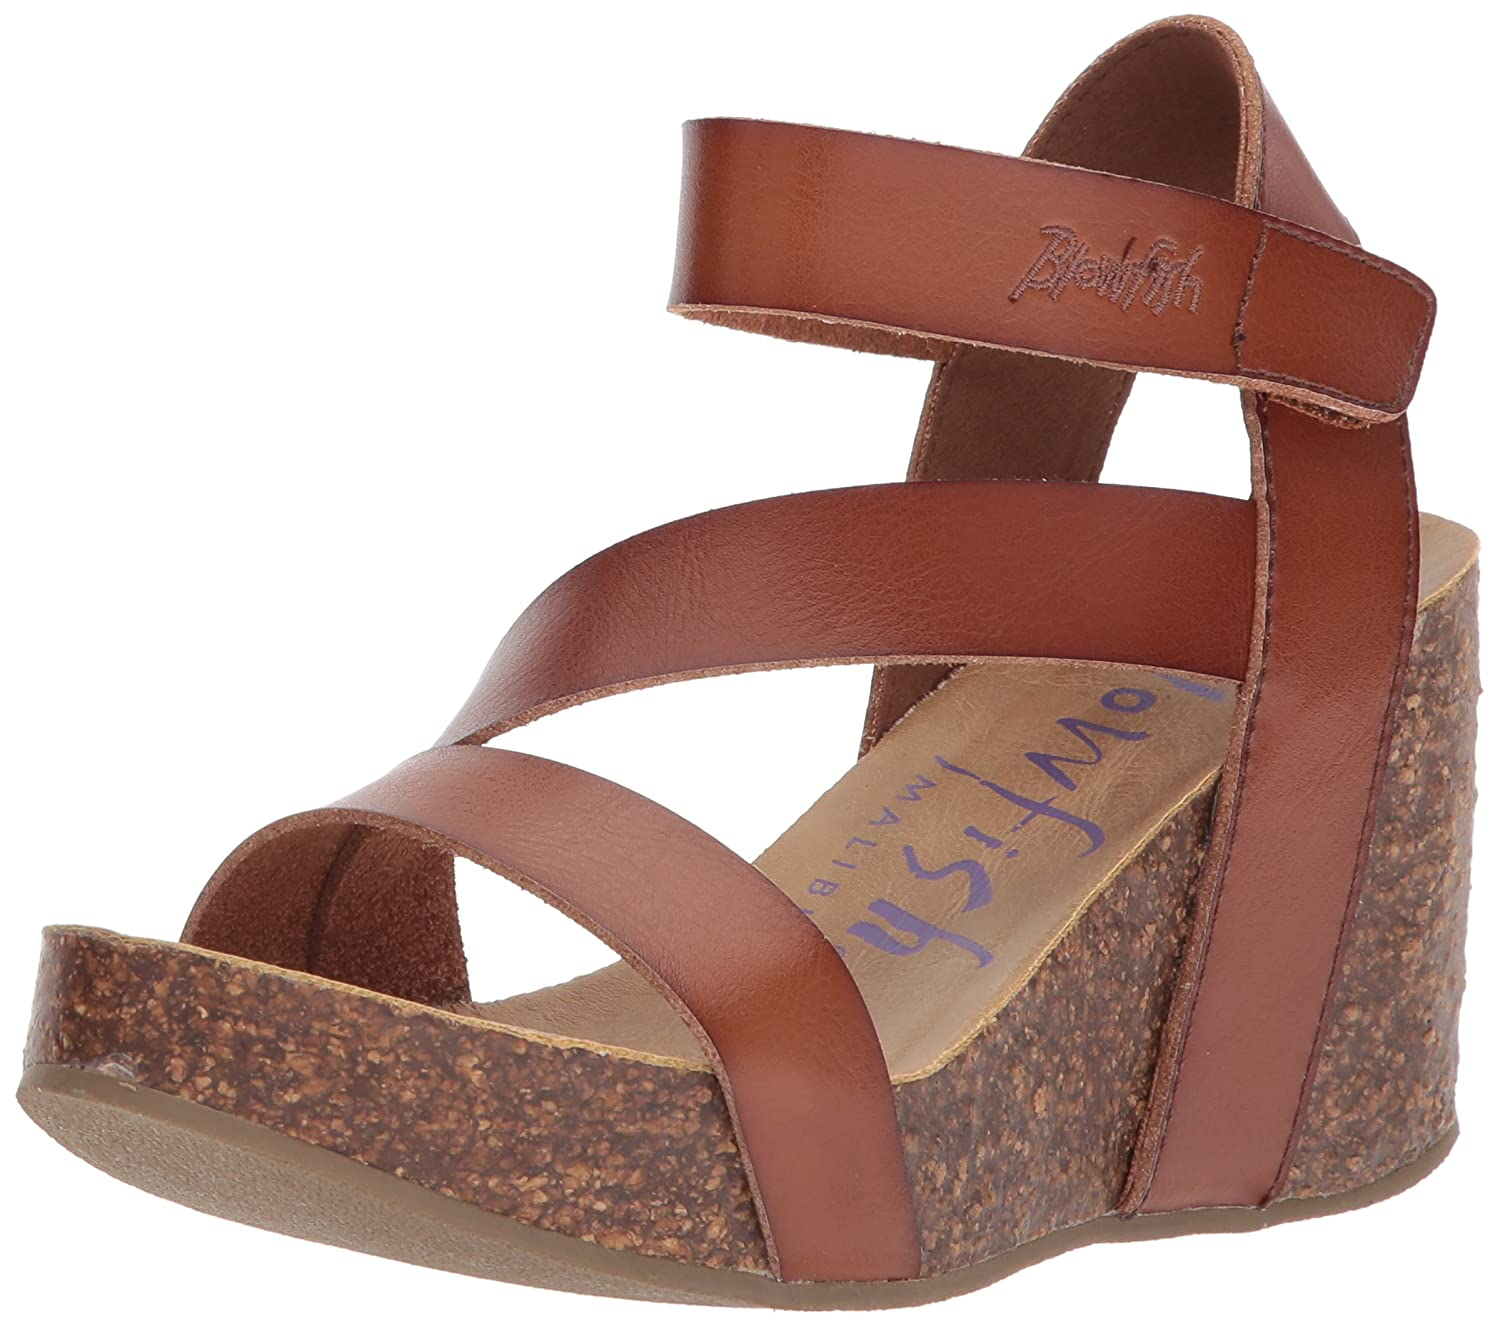 Blowfish Women's Hapuku Wedge Sandal B07FBHXWQT 41-42 M EU / 11 B(M) US|Scotch Dyecut